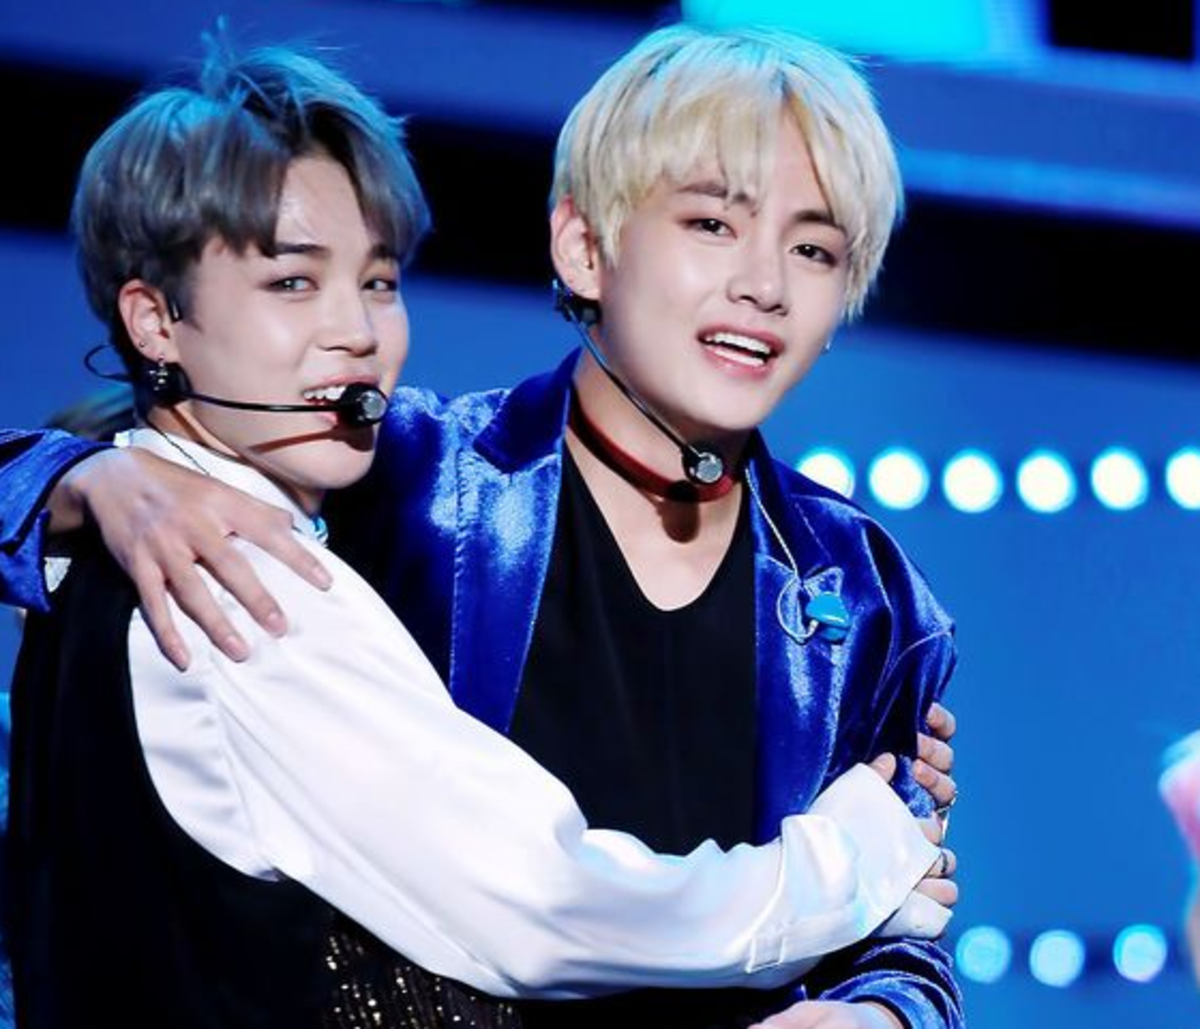 10 Reasons Why BTS' Jimin Is Not Jam-Less | Spinditty